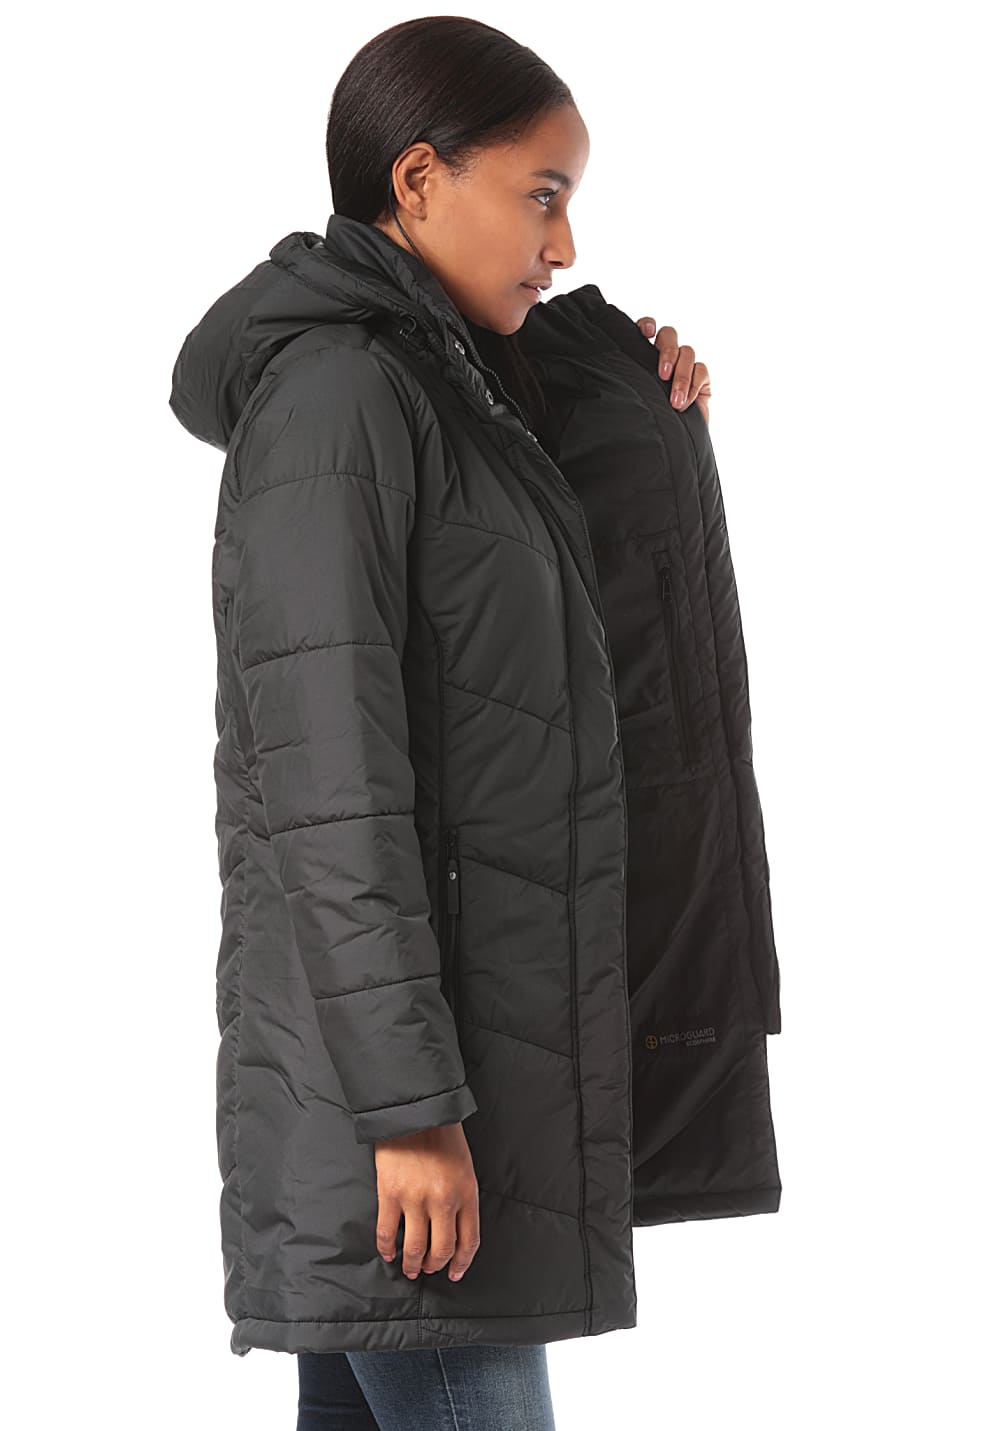 9622cb1fd8 ... Jack Wolfskin Svalbard Coat - Coat for Women - Black. Back to Overview.  1; 2; 3; 4. Previous. Next